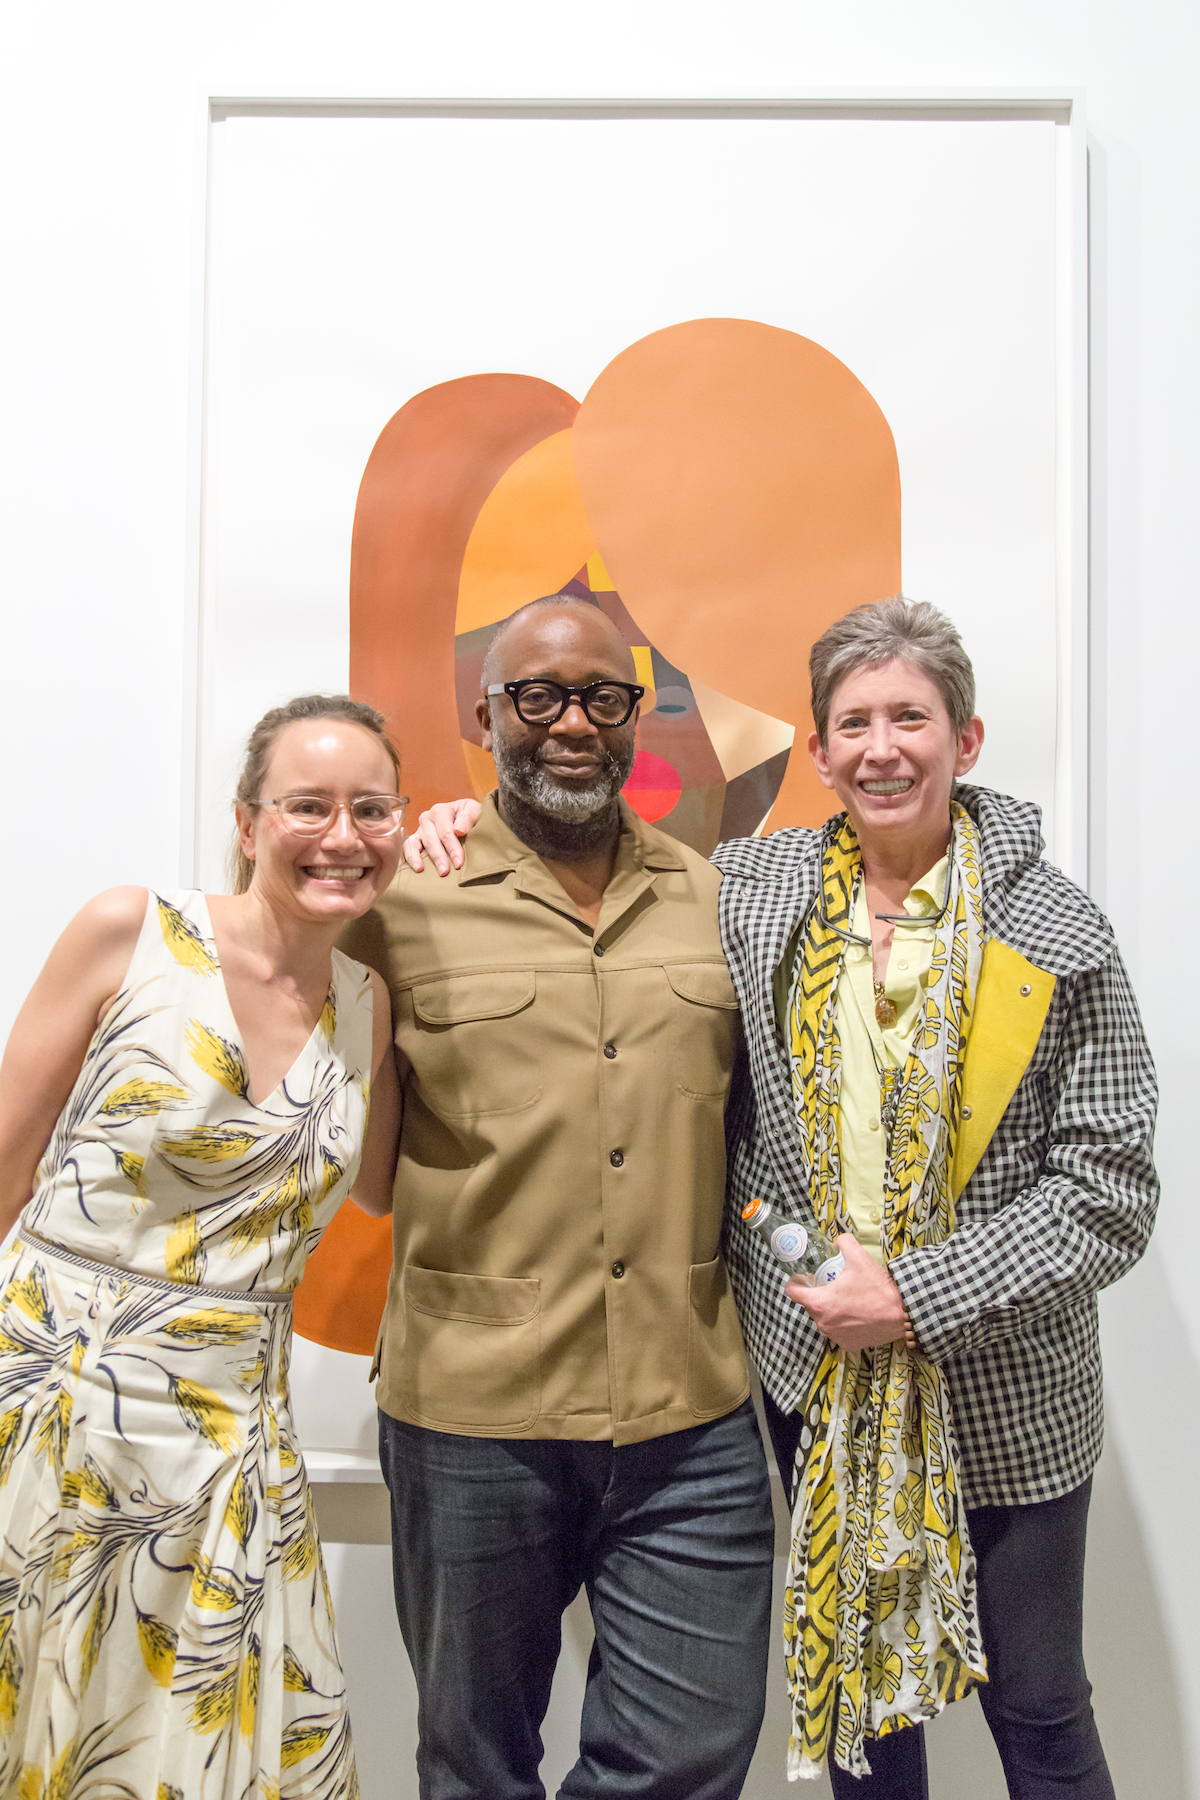 ARTnews in Chicago: Collector Beth Rudin DeWoody and Artist Theaster Gates in Conversation, On the Ground at Expo Chicago, and More